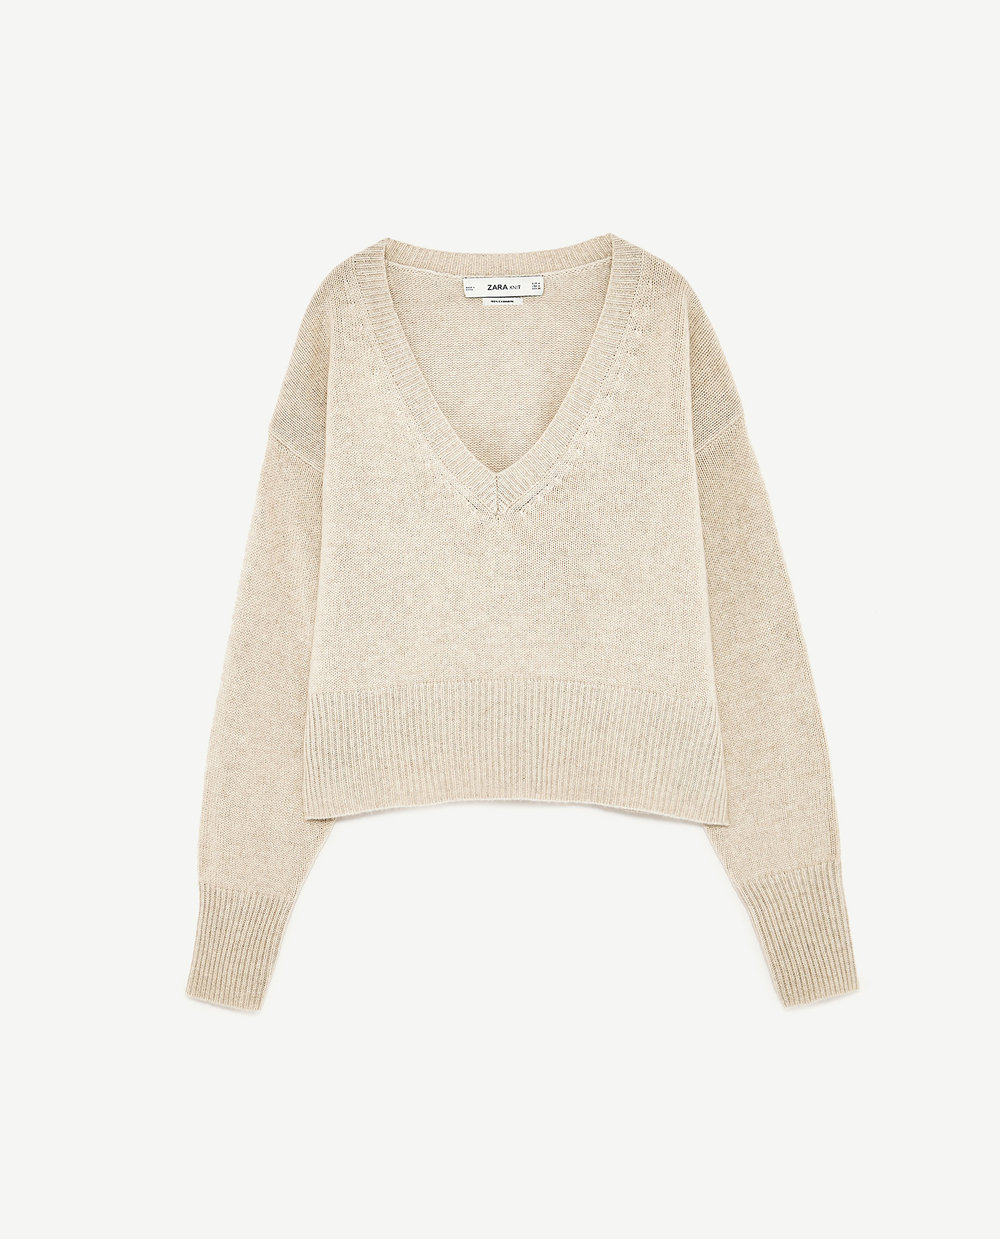 The ultimate cashmere sweater, great cut, and super soft. This is a classic, especially in this oatmeal colour.